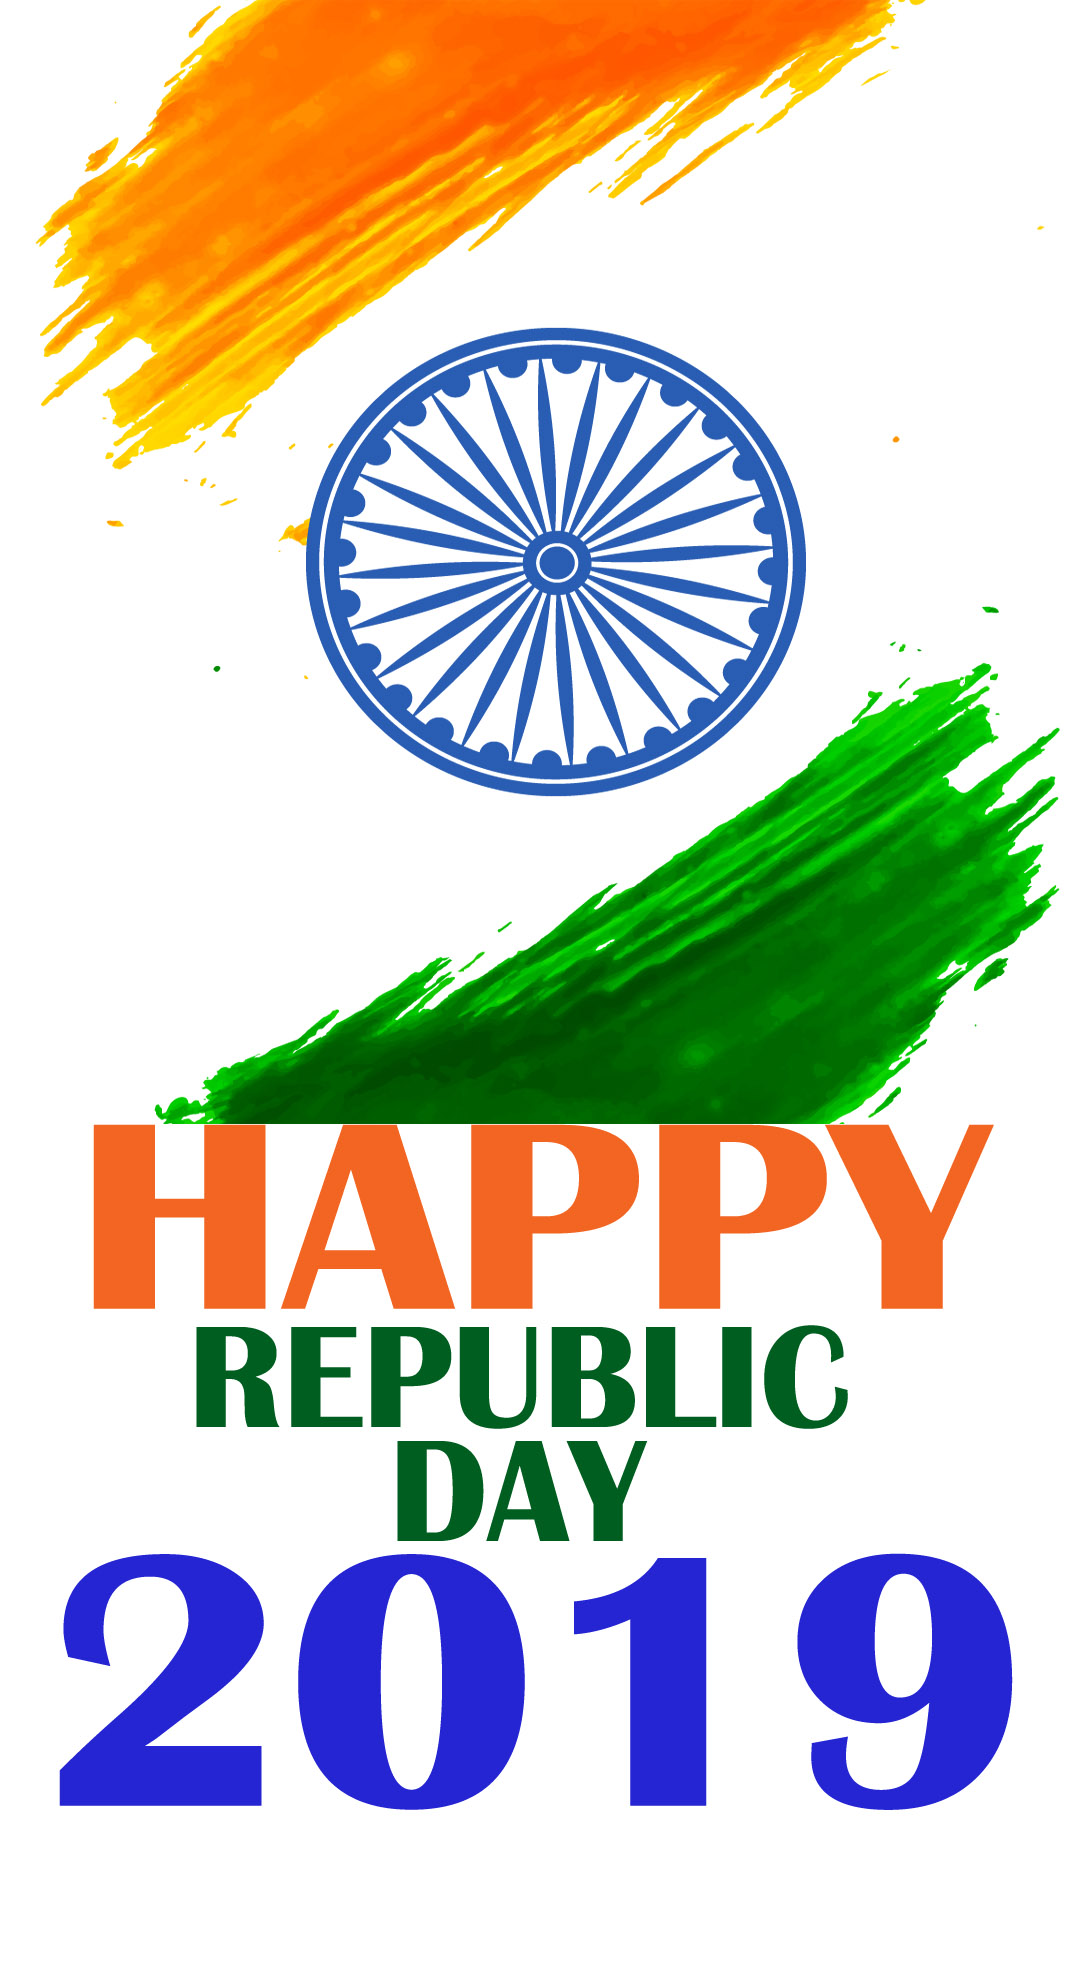 download Happy Republic Day 2019 Wishes HD Wallpapers For FB 1080x1980